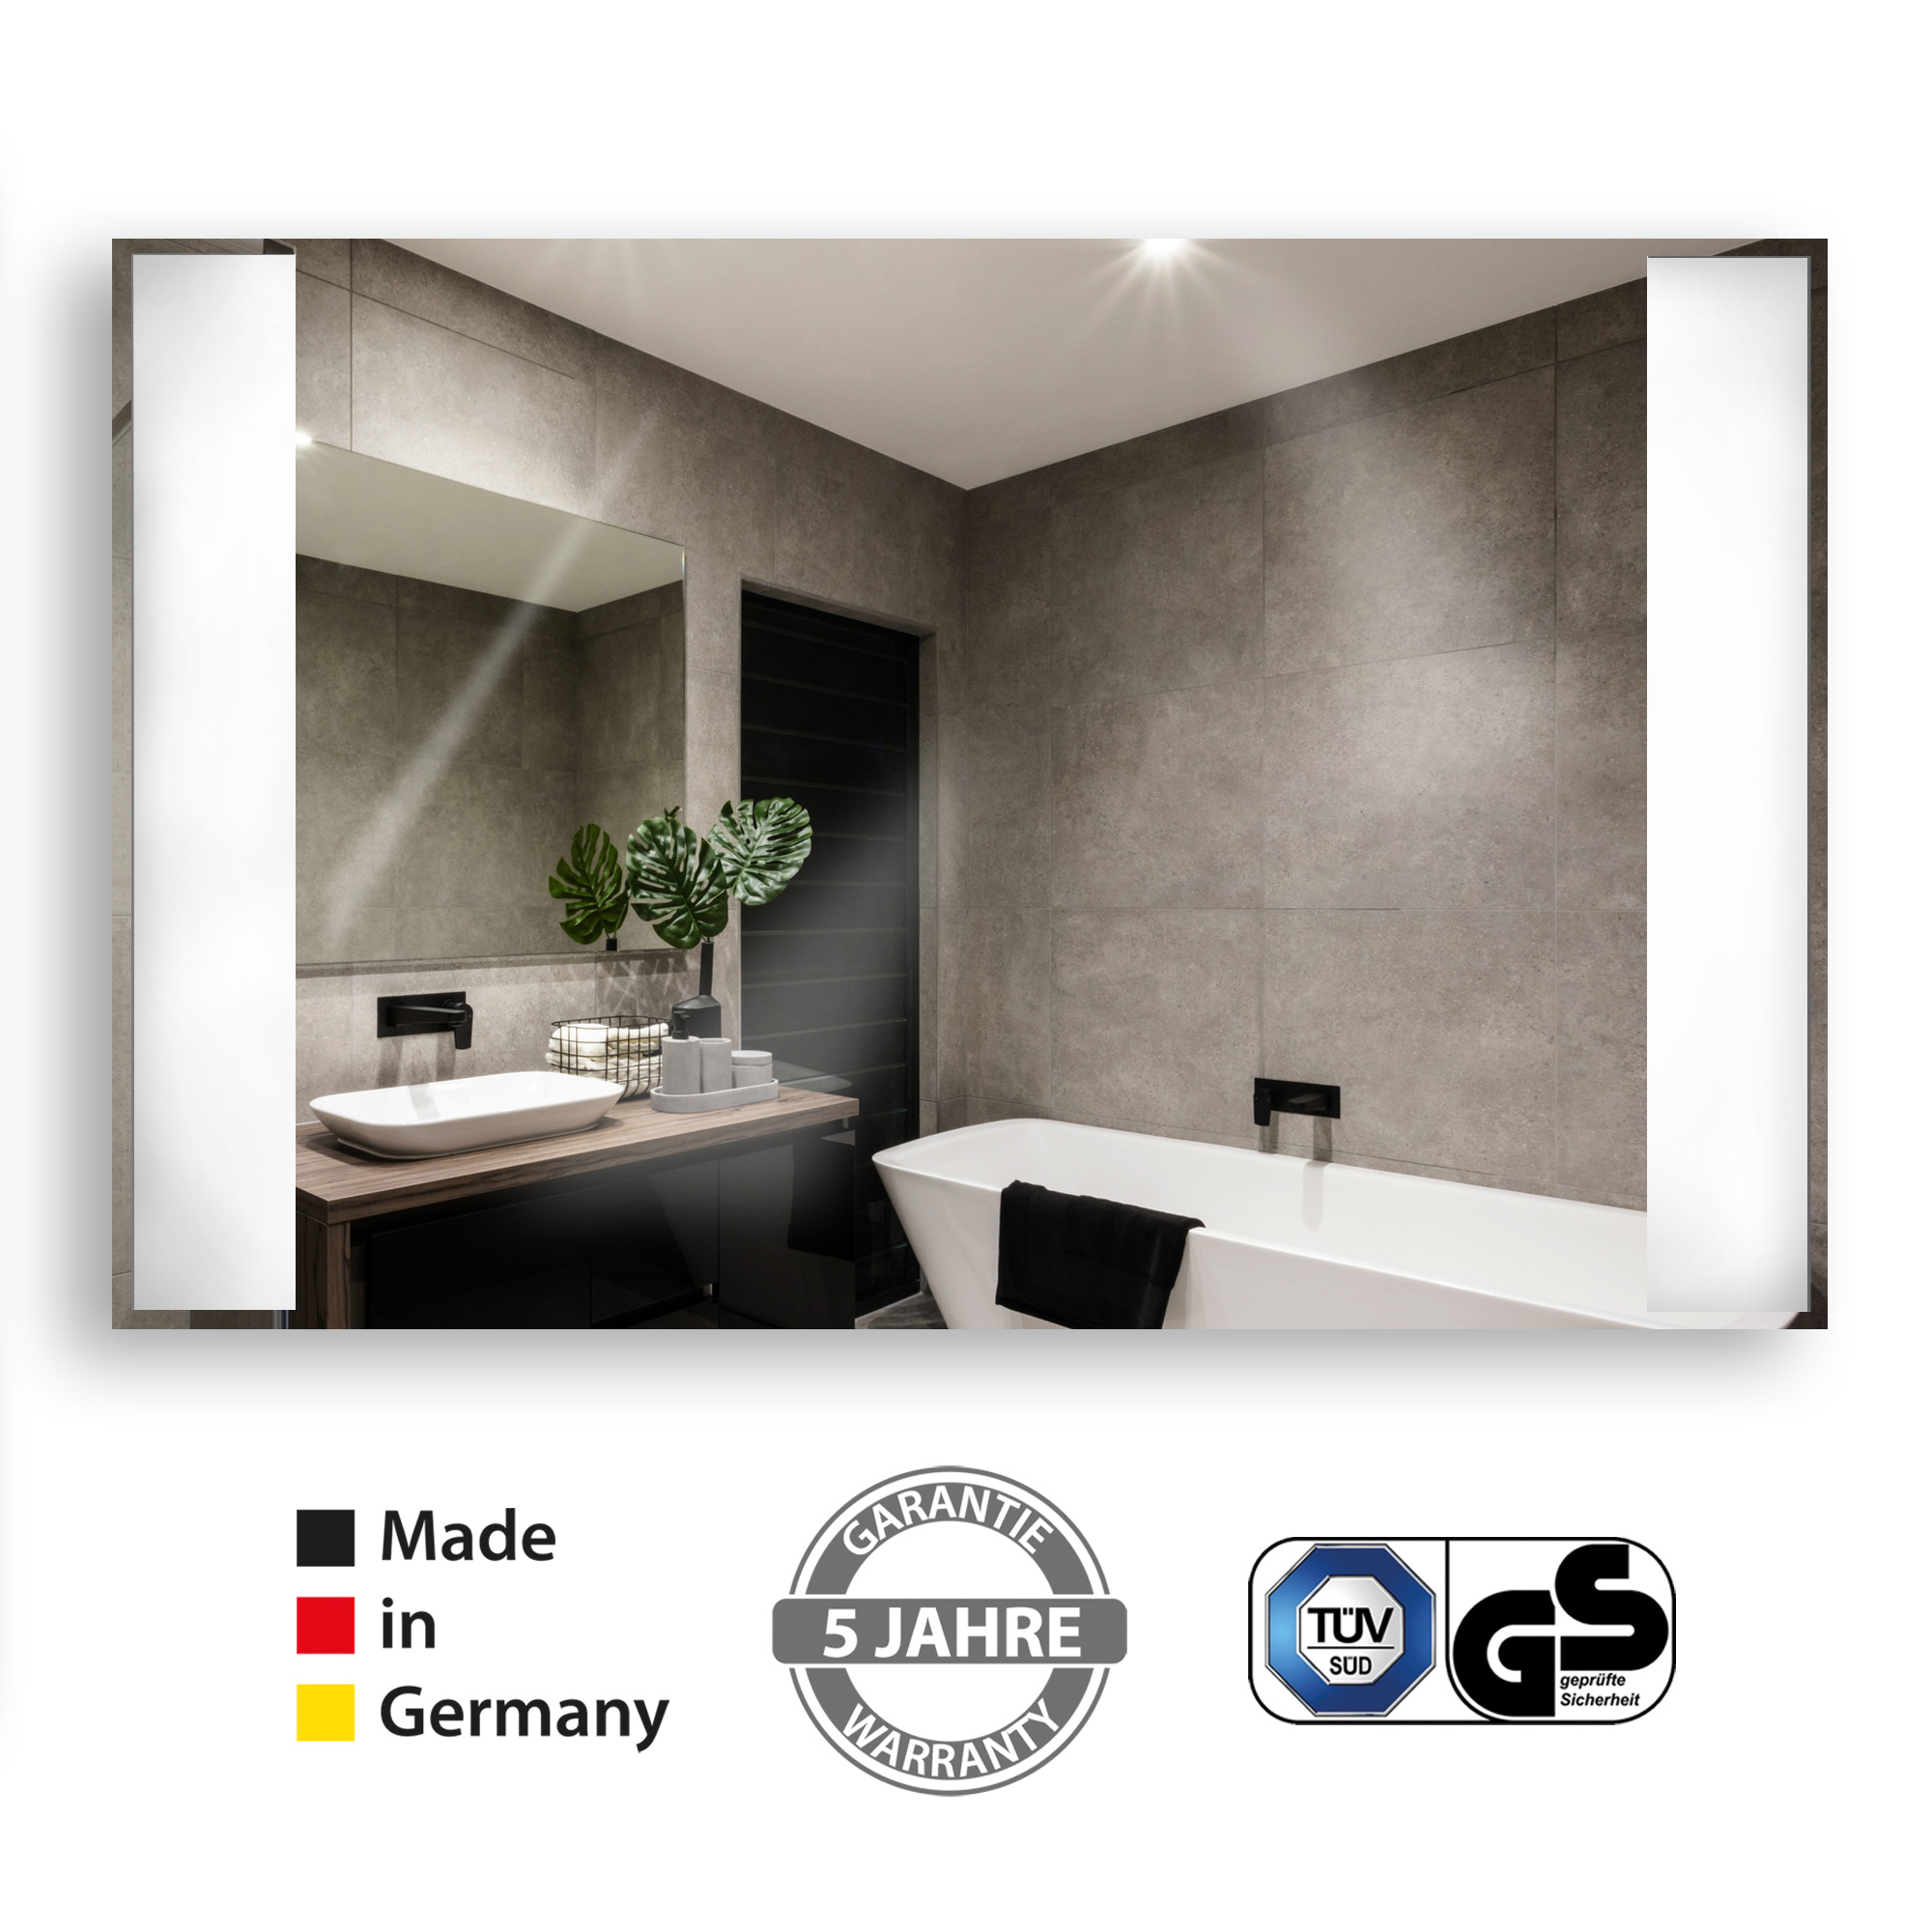 Infrared mirror heating panel in German quality